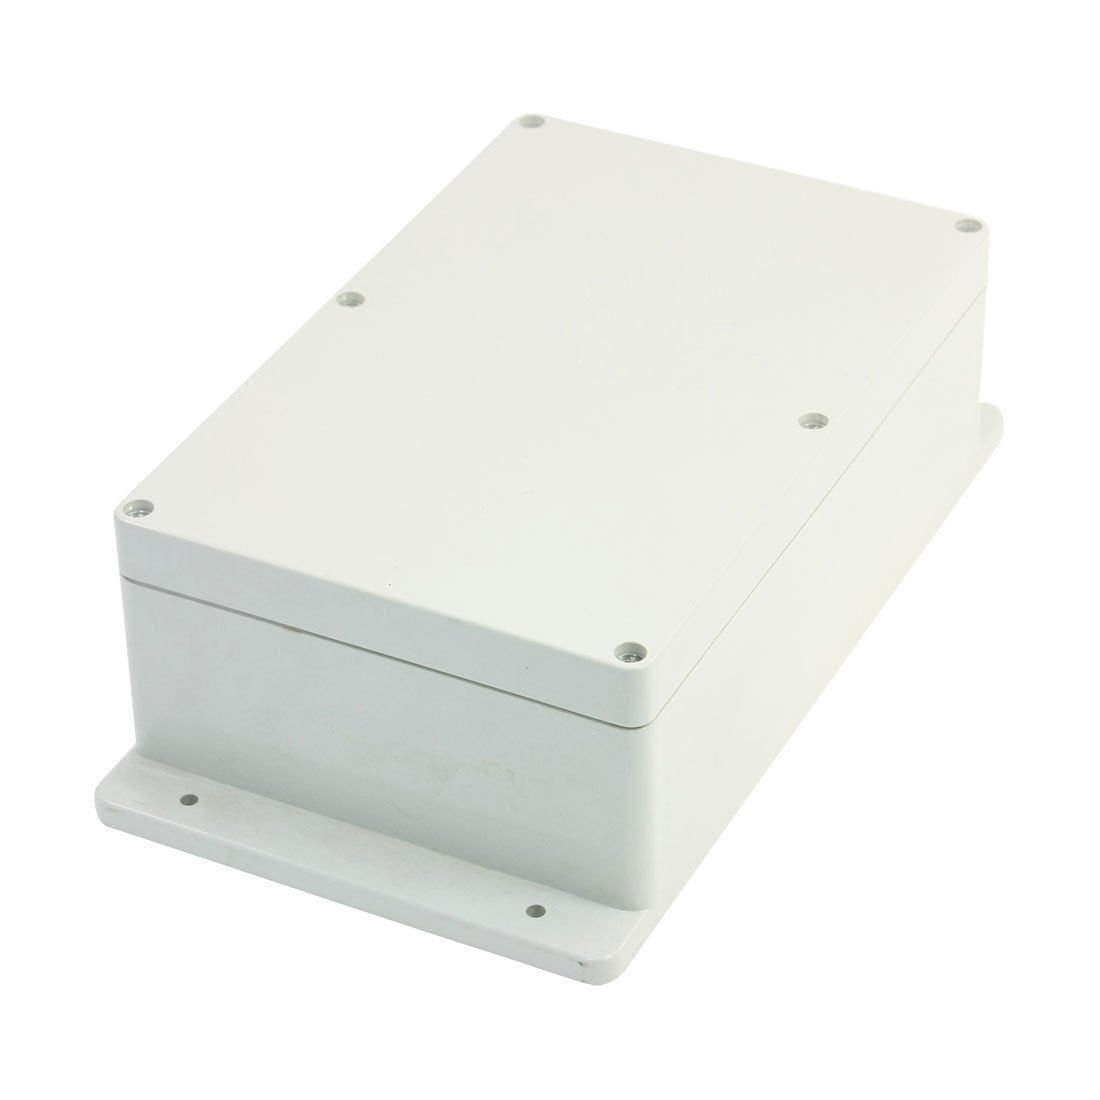 230x150x85mm Cable Connect Waterproof Plastic Case Junction Box